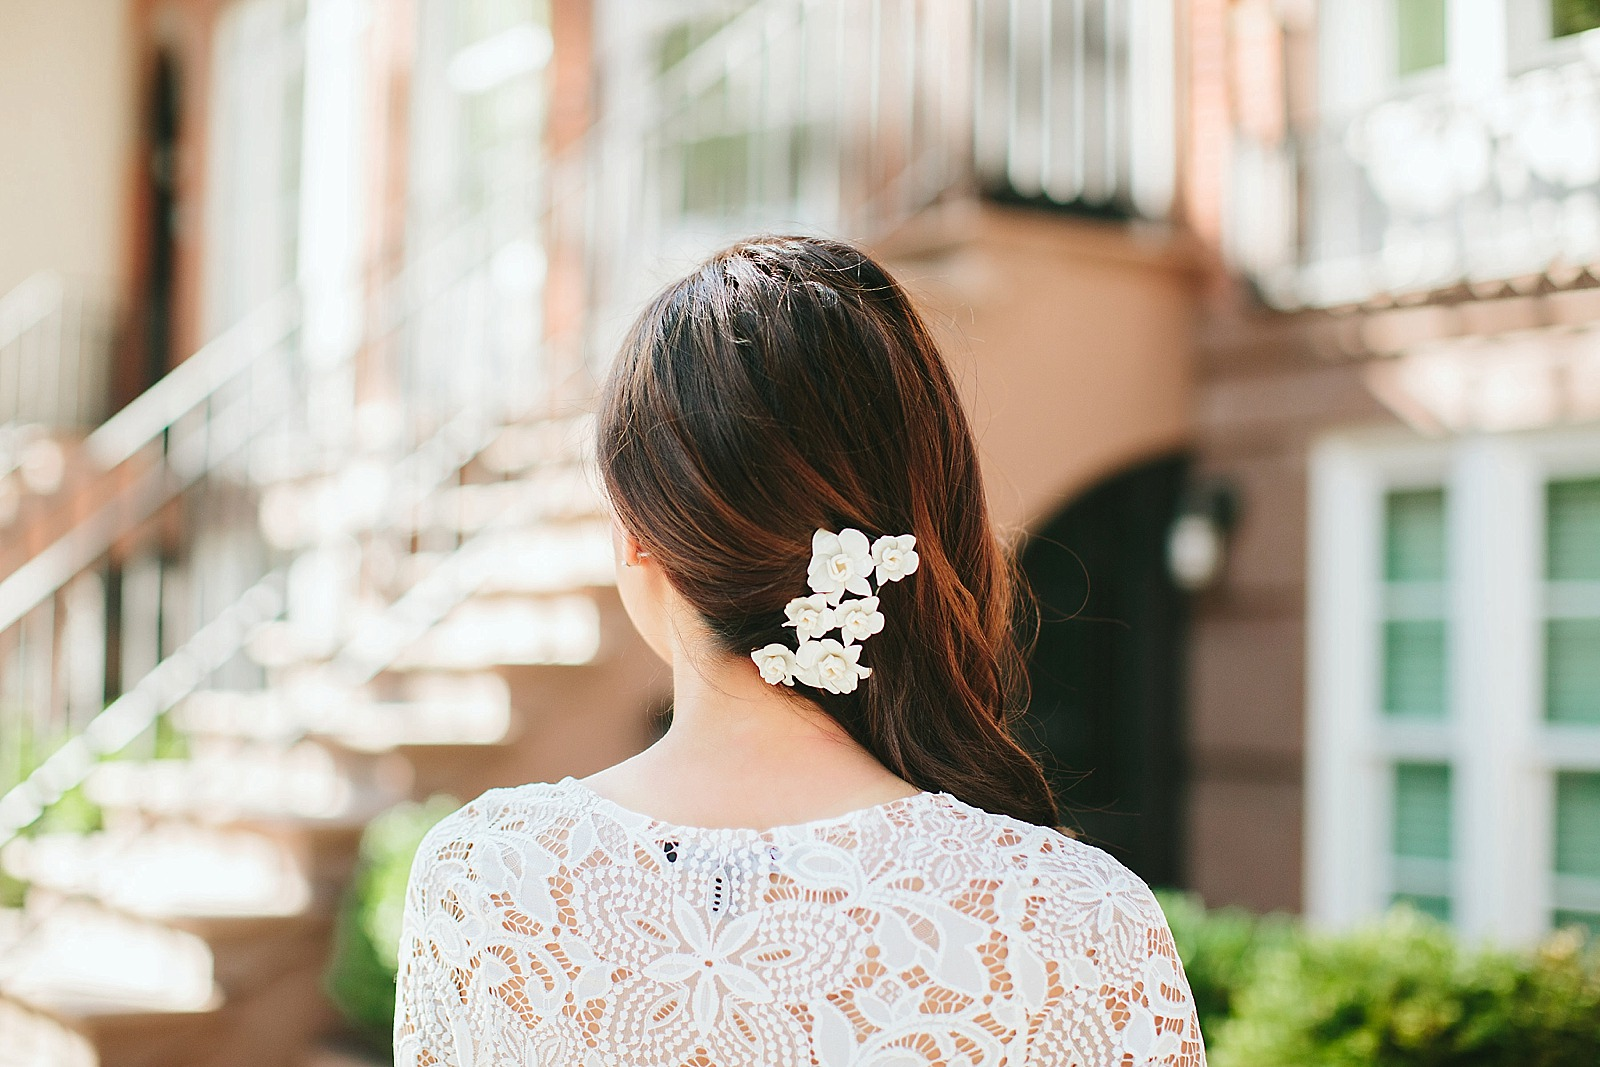 white lace dress streets of brooklyn / diana elizabeth / www.dianaelizabethblog.com